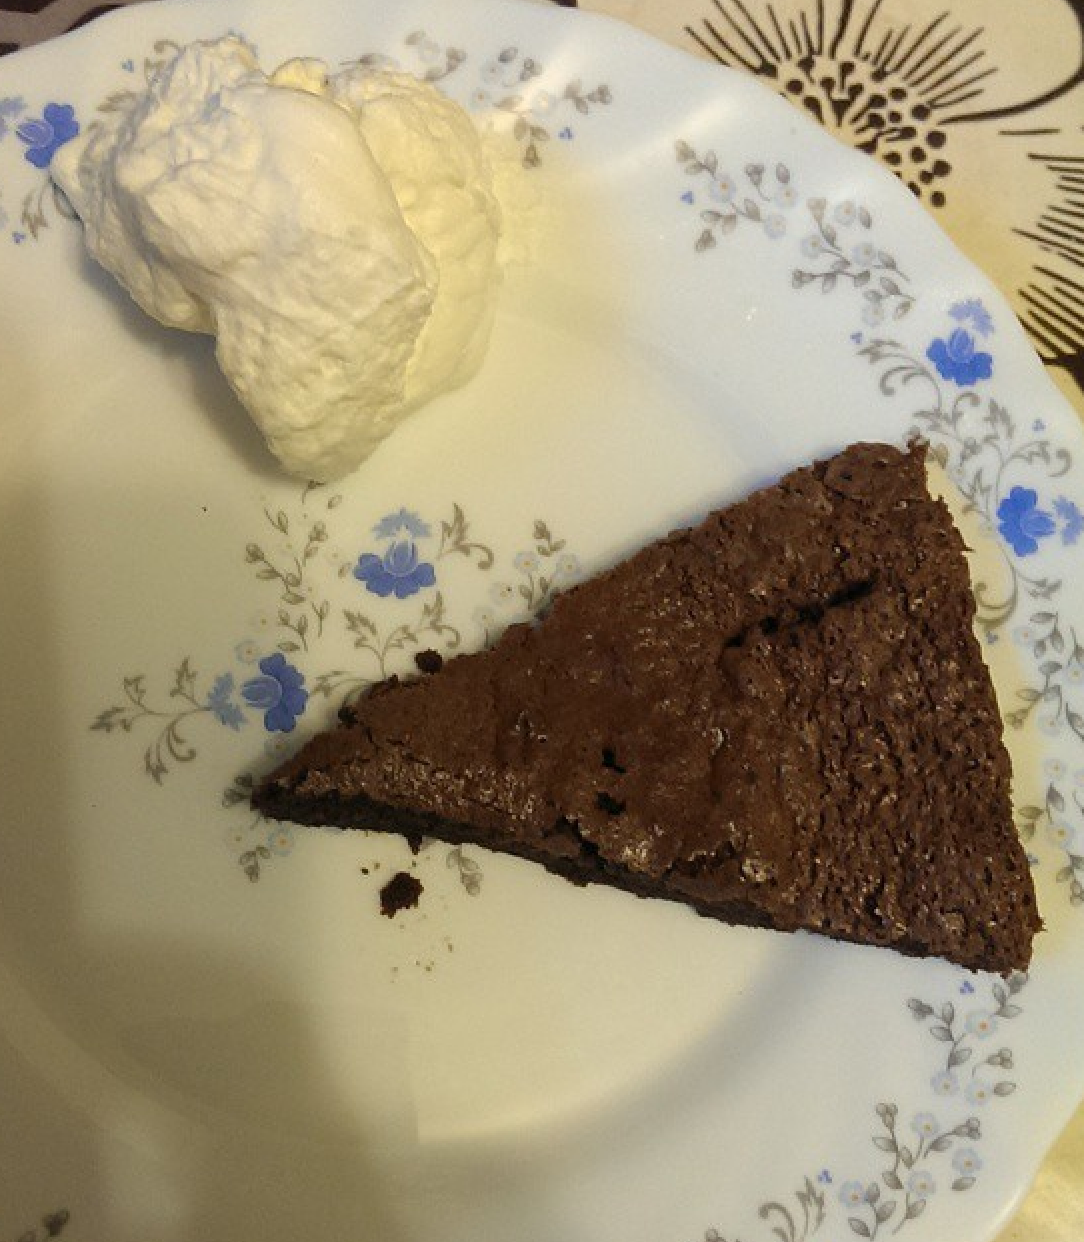 Chilli Chocolate Cake With Ginger Frosting